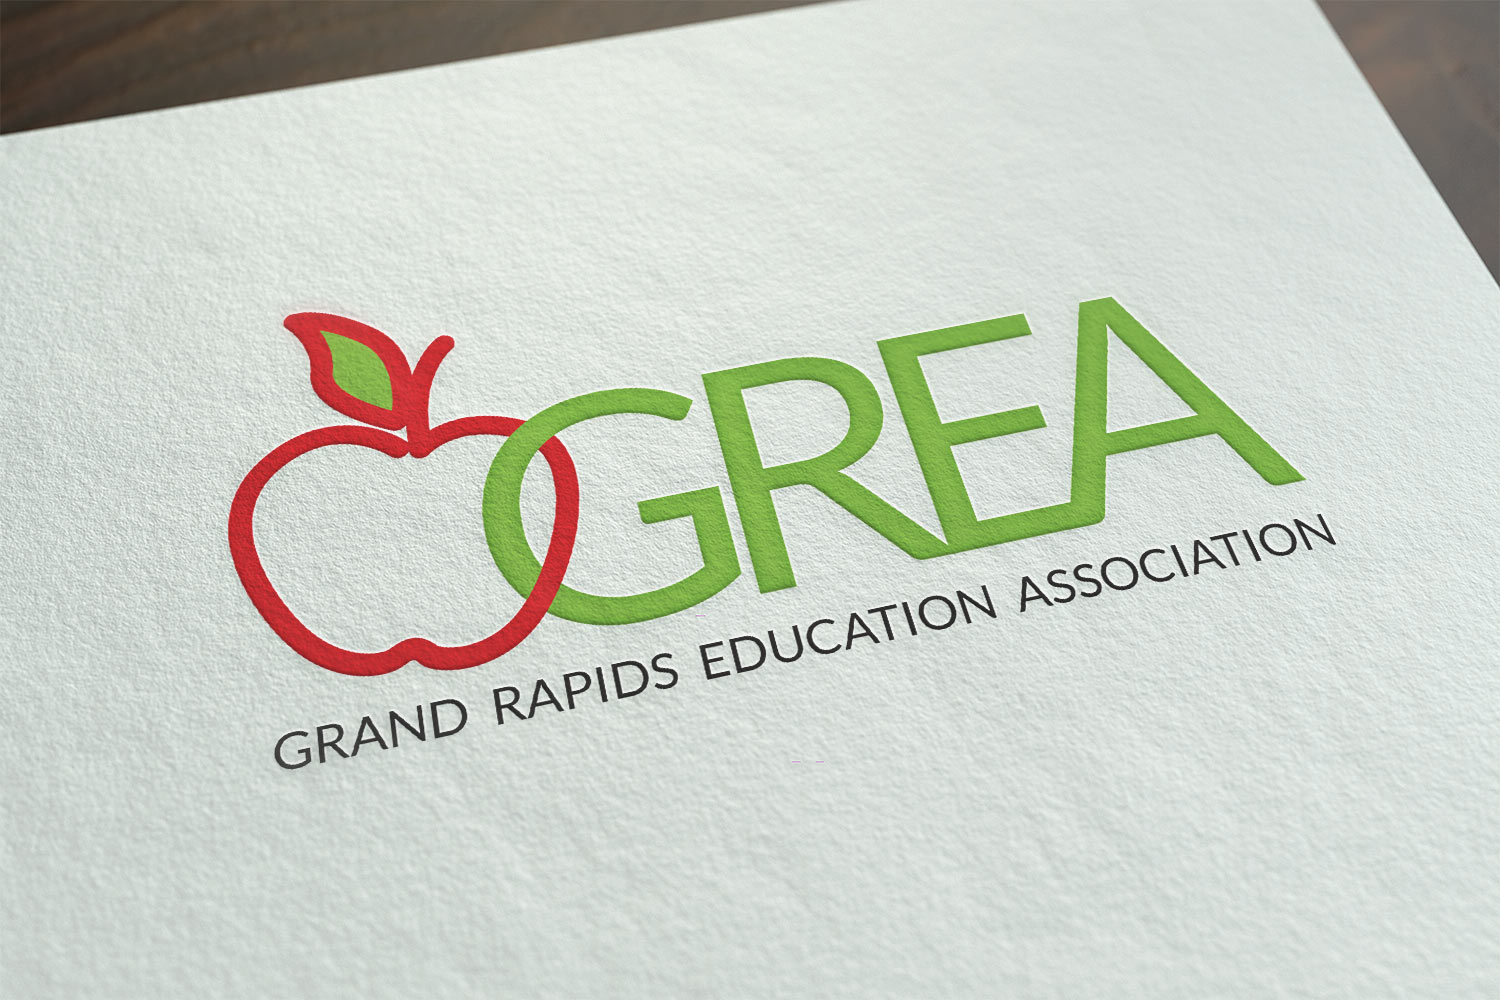 Grand Rapids Education Association Logo